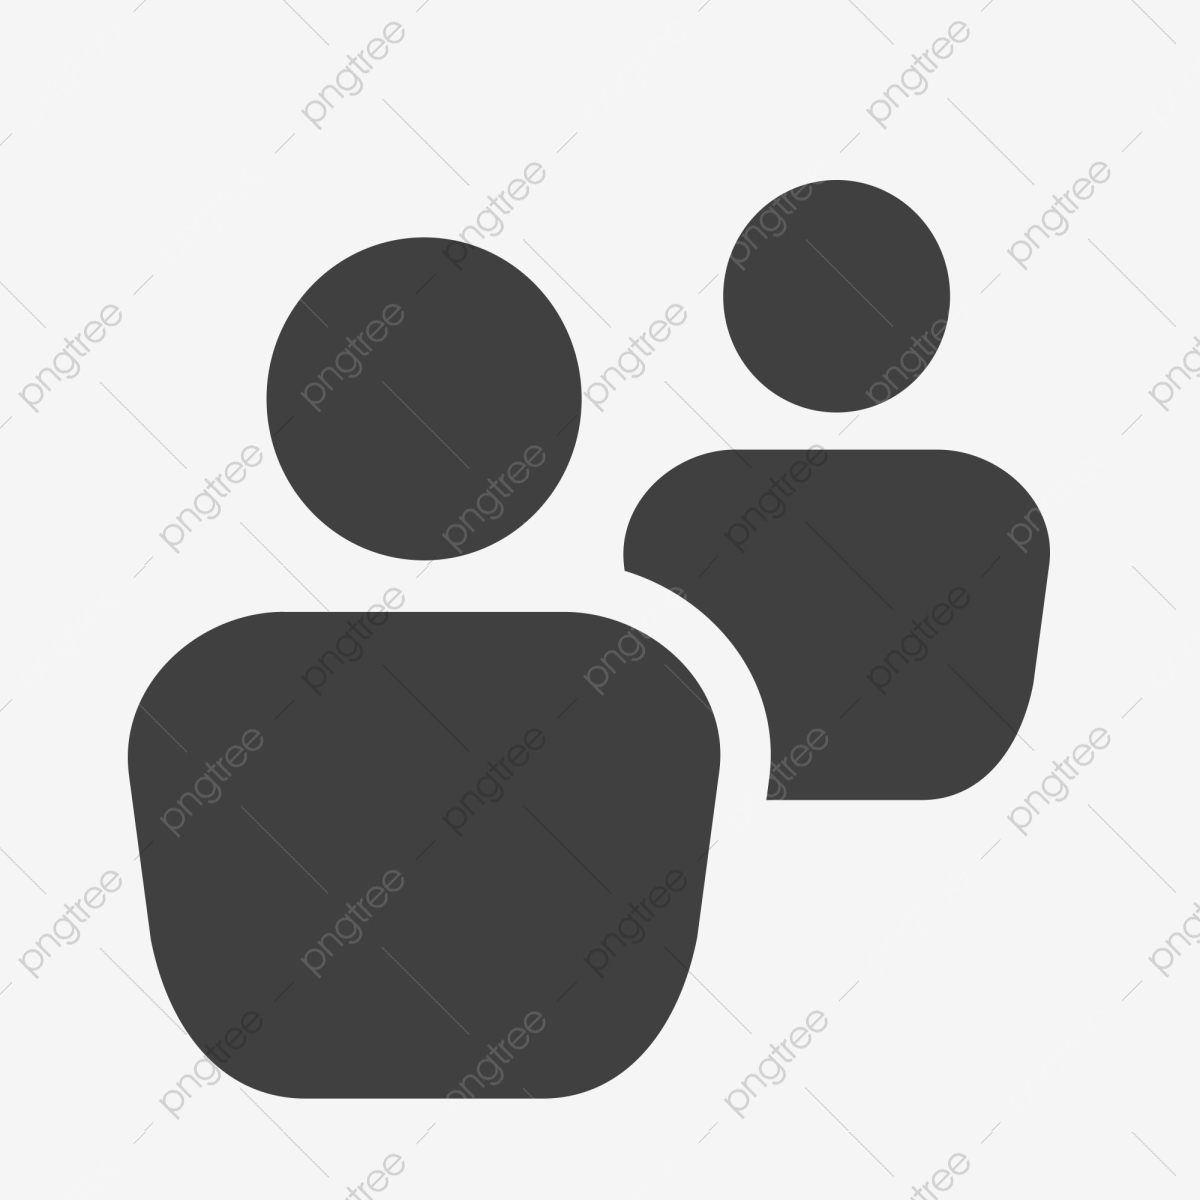 Contact Icon Contacts Flat Ui Ui Icons Png Transparent Clipart Image And Psd File For Free Download